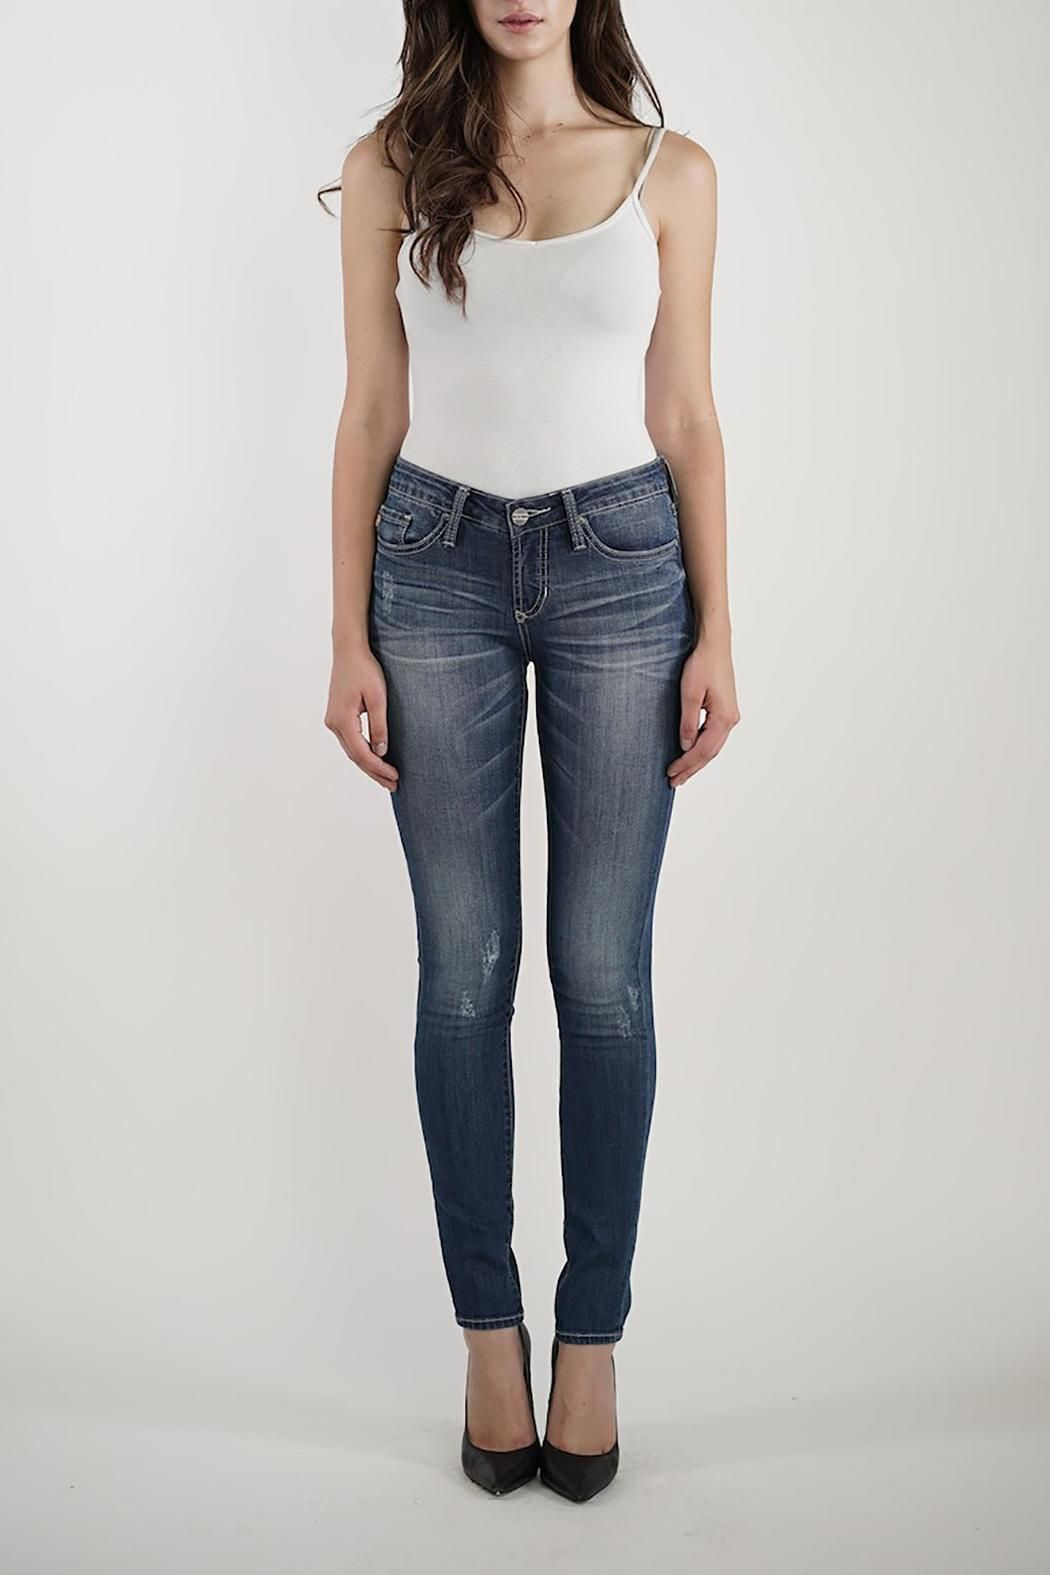 Comfortable hip-hugging skinny denim jeans with a nice amount of stretch faded dye and subtle distressed detailing. Fit is true to size. Joyrich Skinny Jeans by Dear John. Clothing - Bottoms Oregon